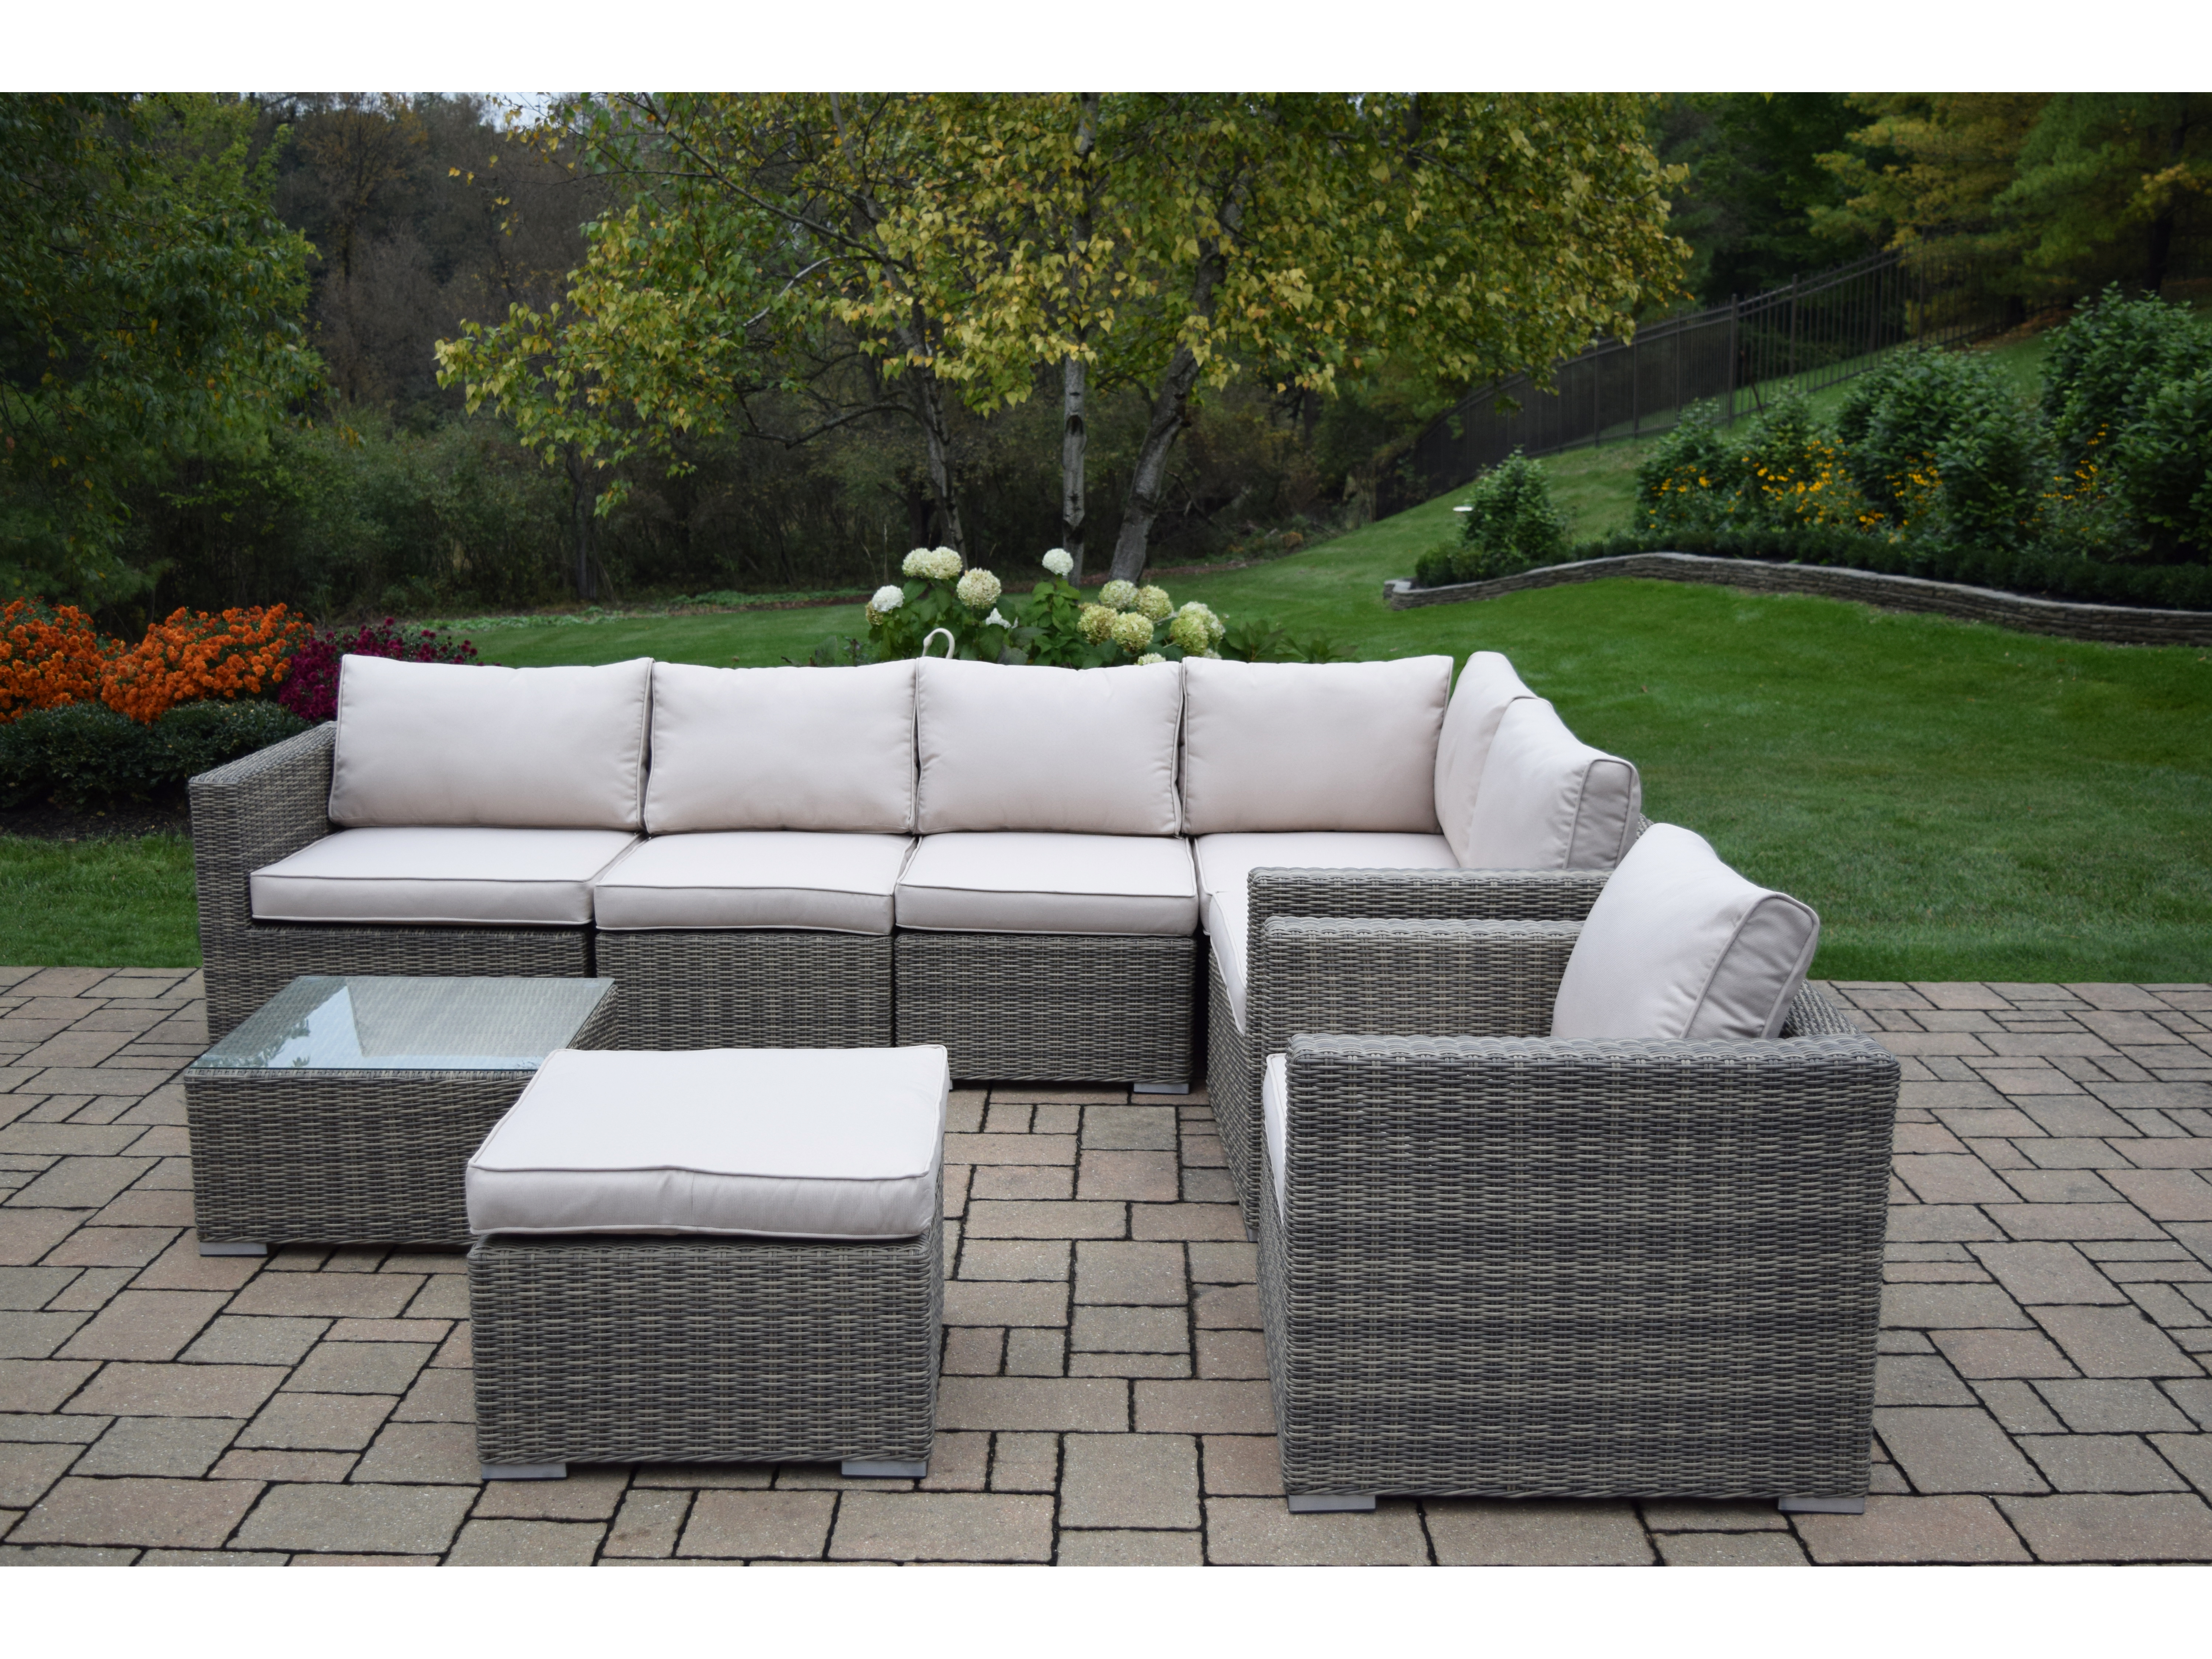 Astonishing Oakland Living Borneo Modular All Weather Resin Wicker Sectional Zipper Cushioned 8 Pcs Deep Seat Sofa Set Including A Club Chair Ottoman Coffee Ibusinesslaw Wood Chair Design Ideas Ibusinesslaworg